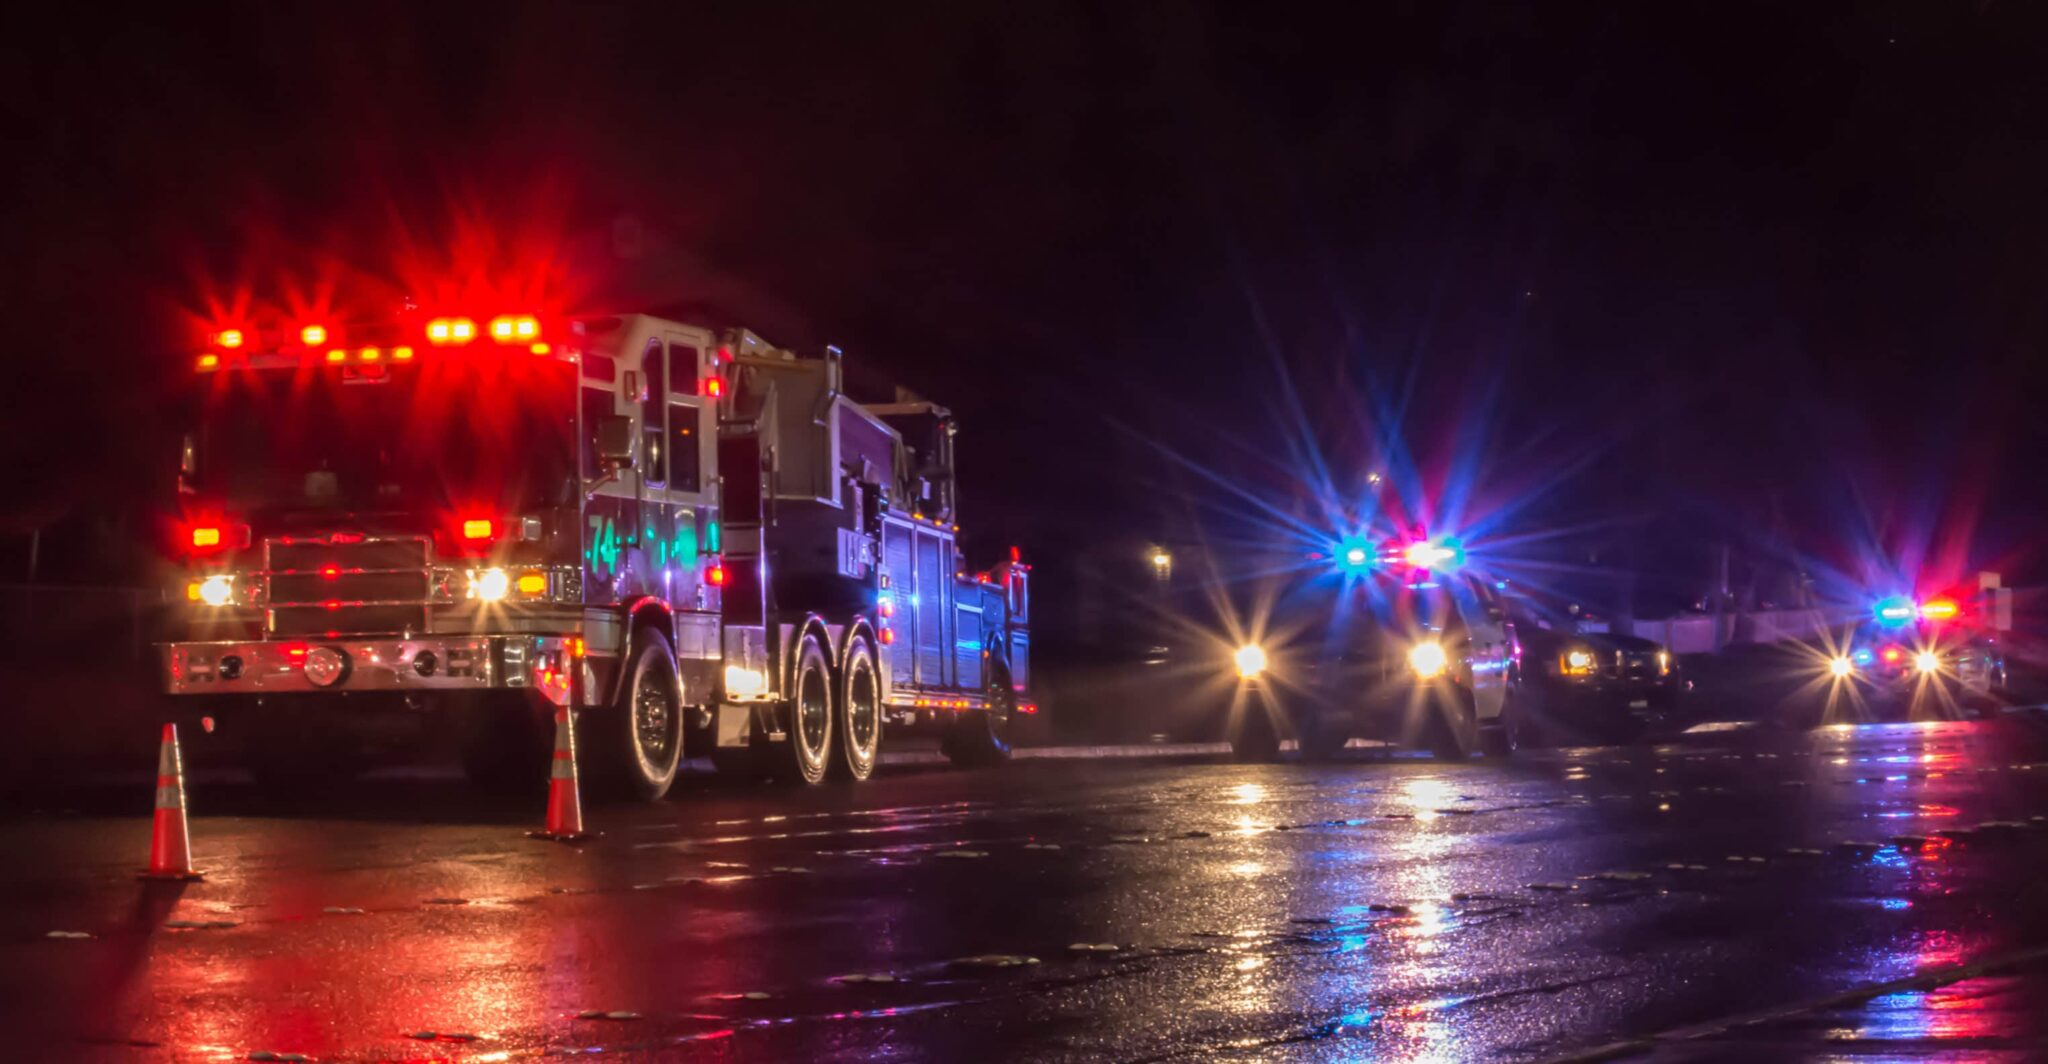 Fire trucks and emergency responder vehicles on a dar road on a rainy night.